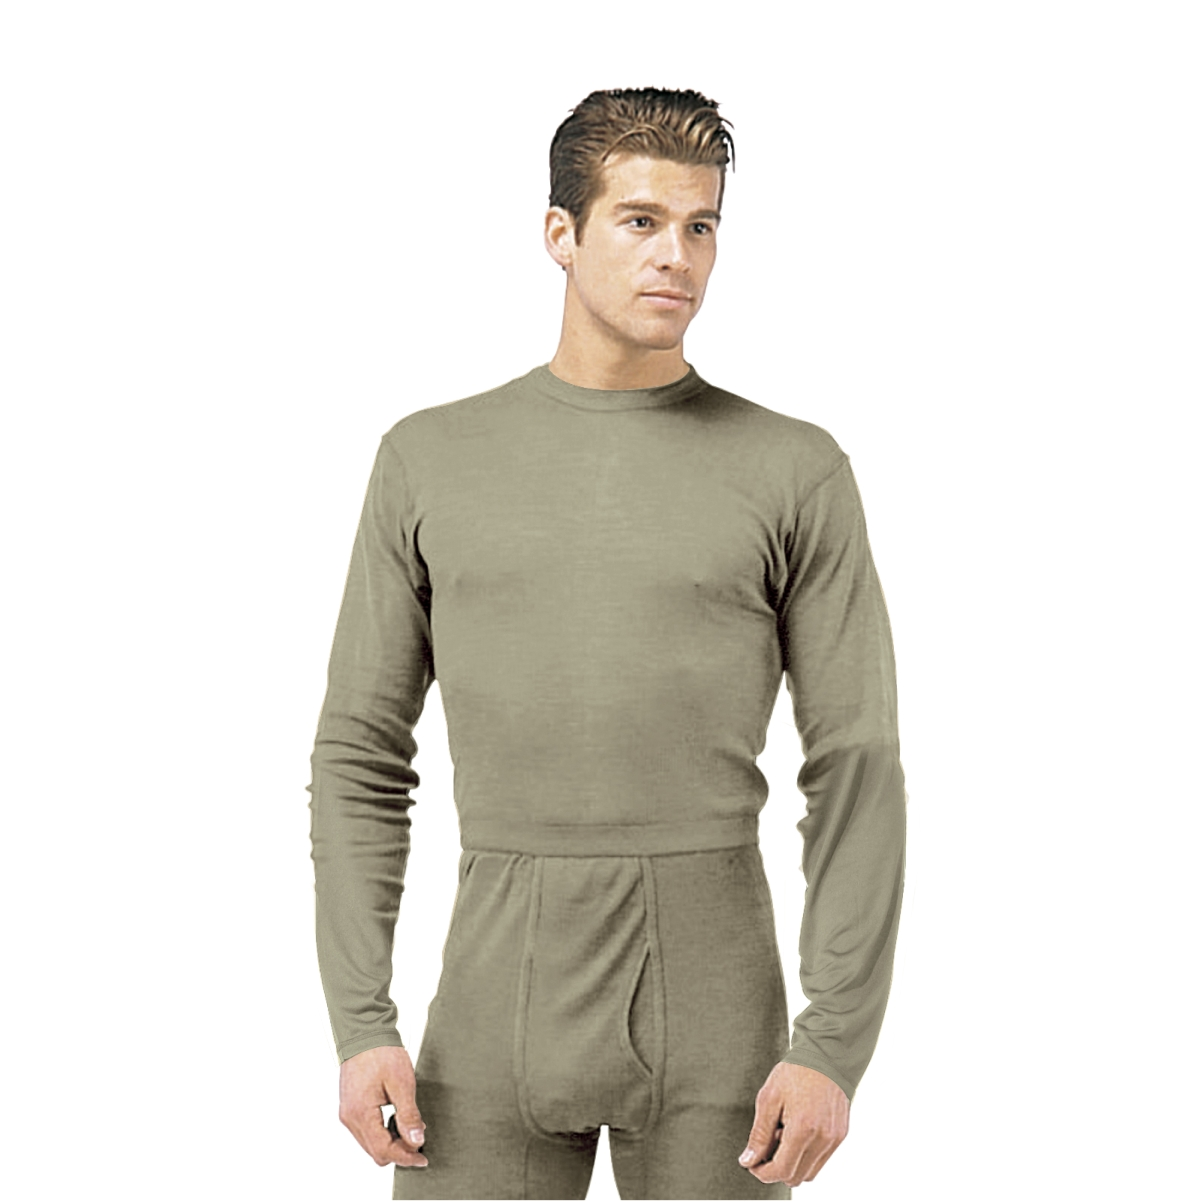 Silk Weight Thermal Underwear Shirt, Foliage Mens - Walmart.com